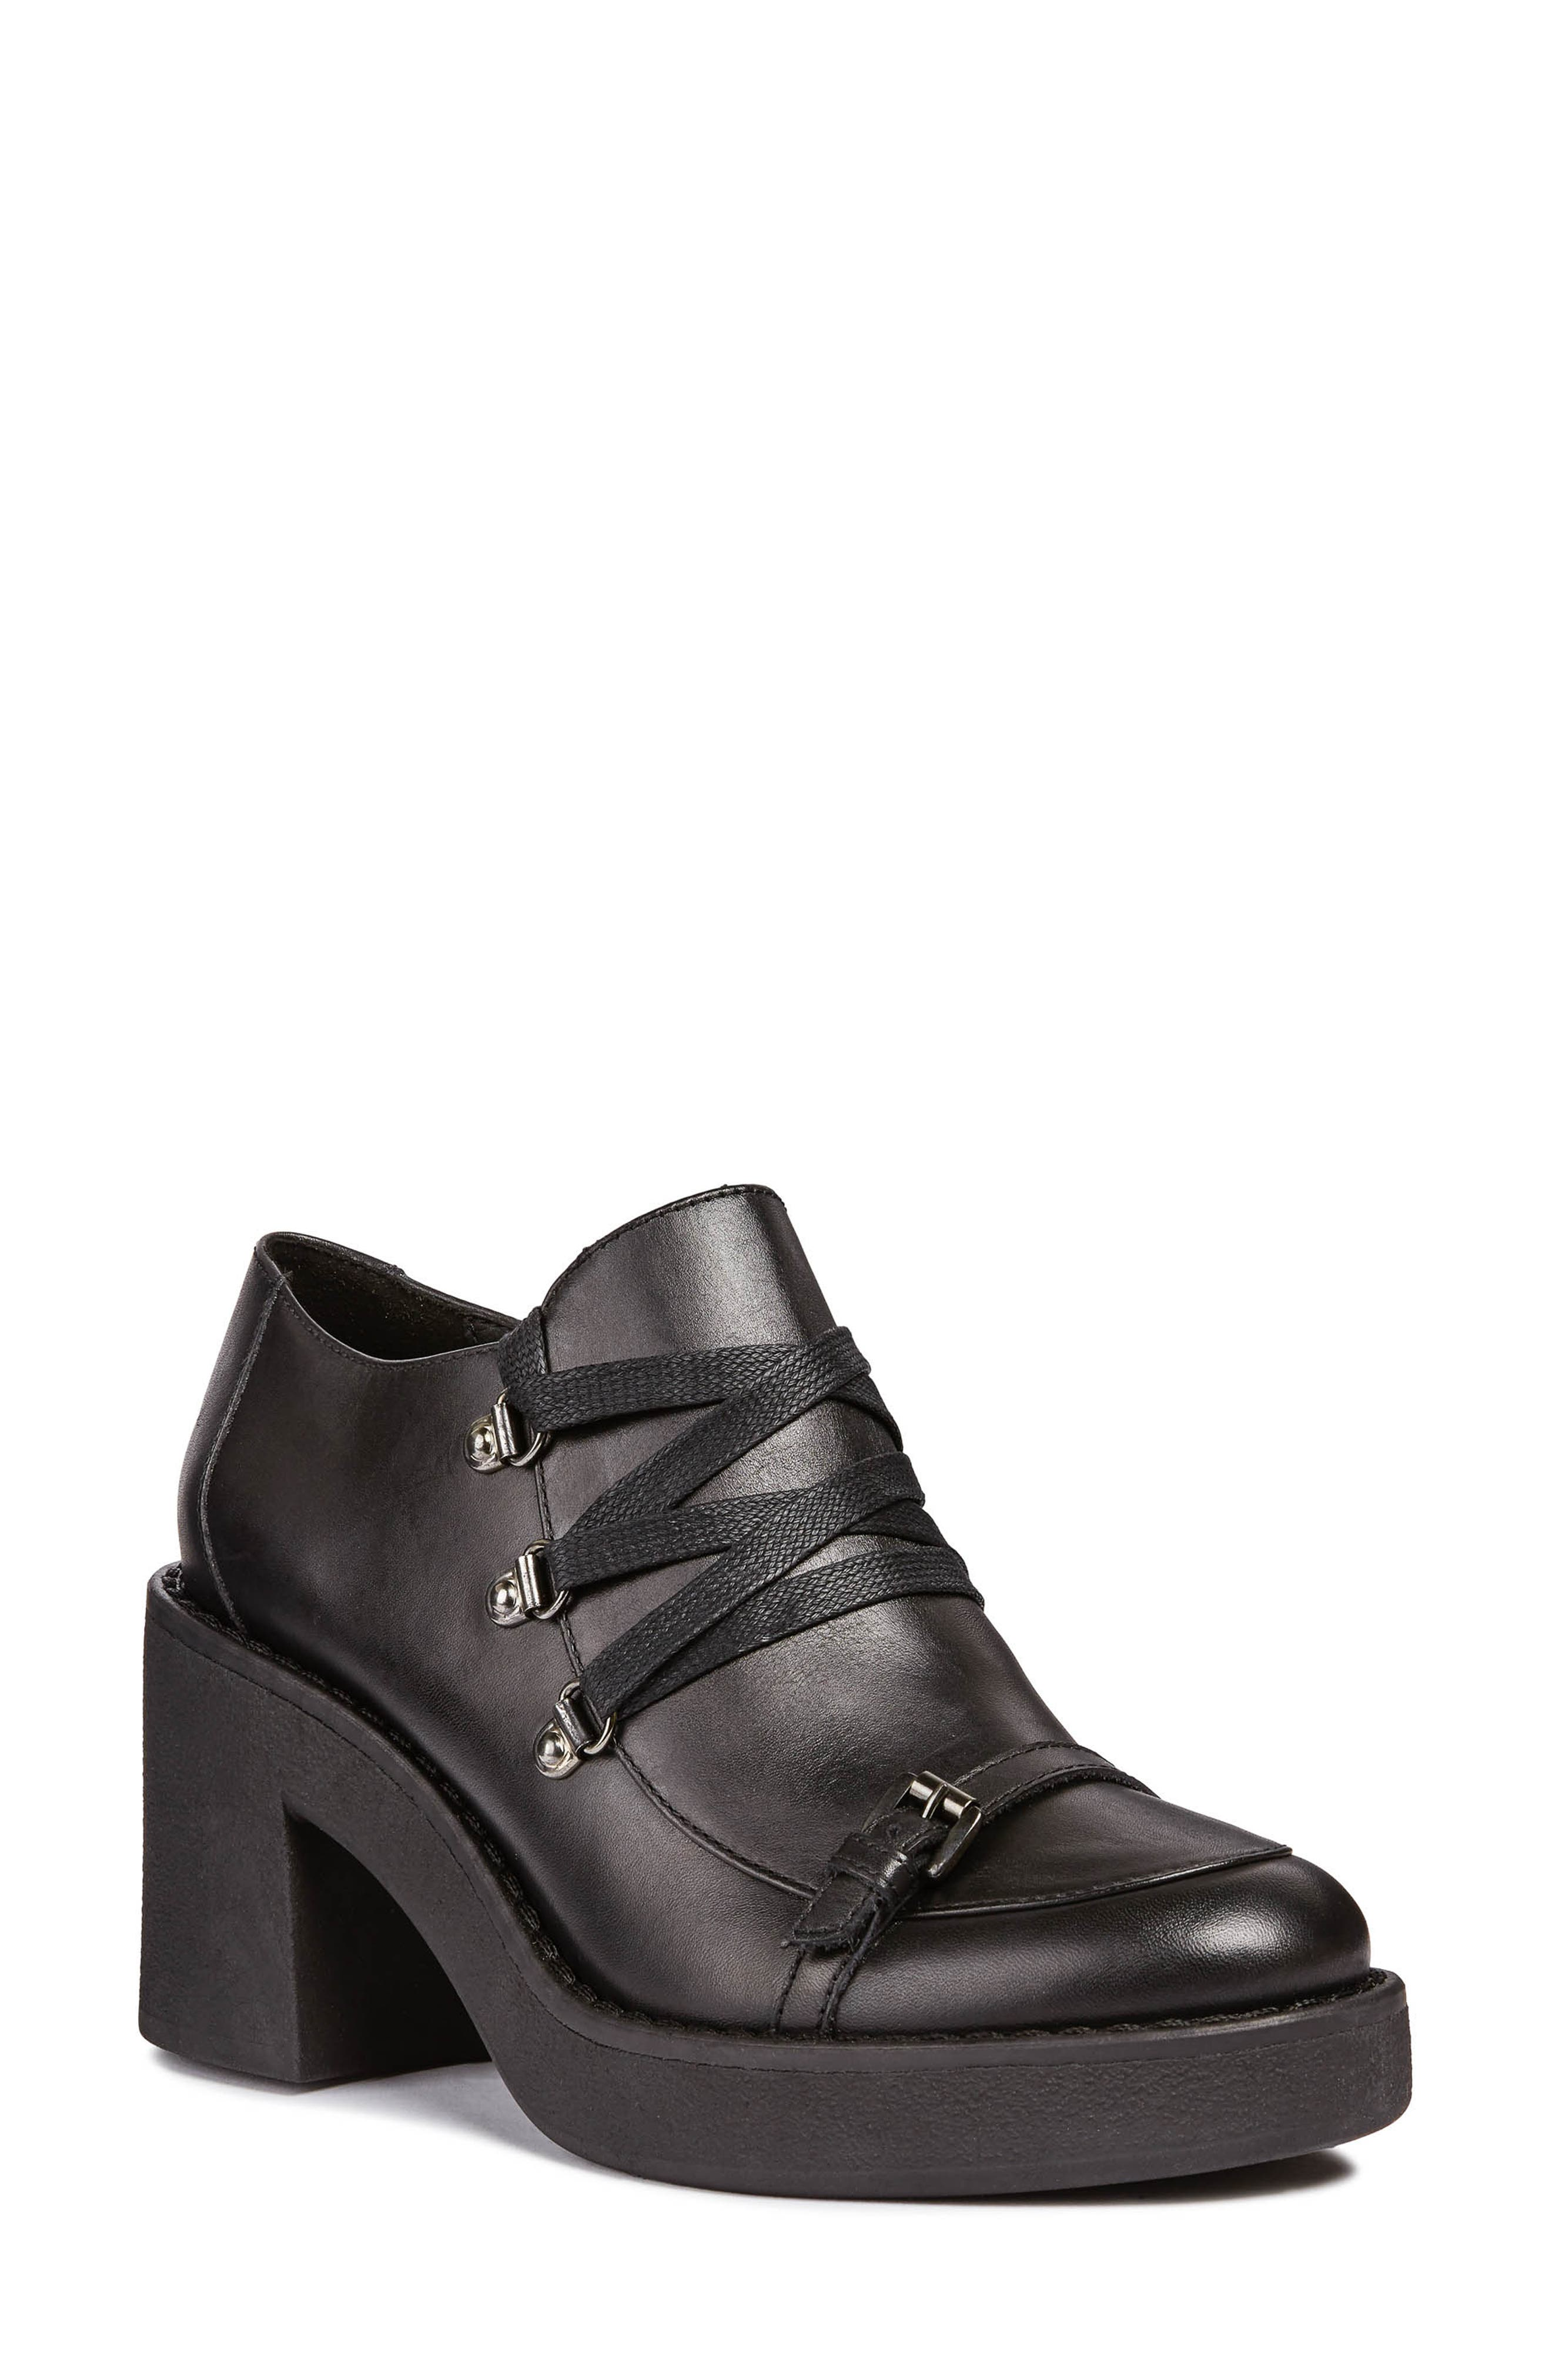 Adrya Bootie,                         Main,                         color, BLACK LEATHER